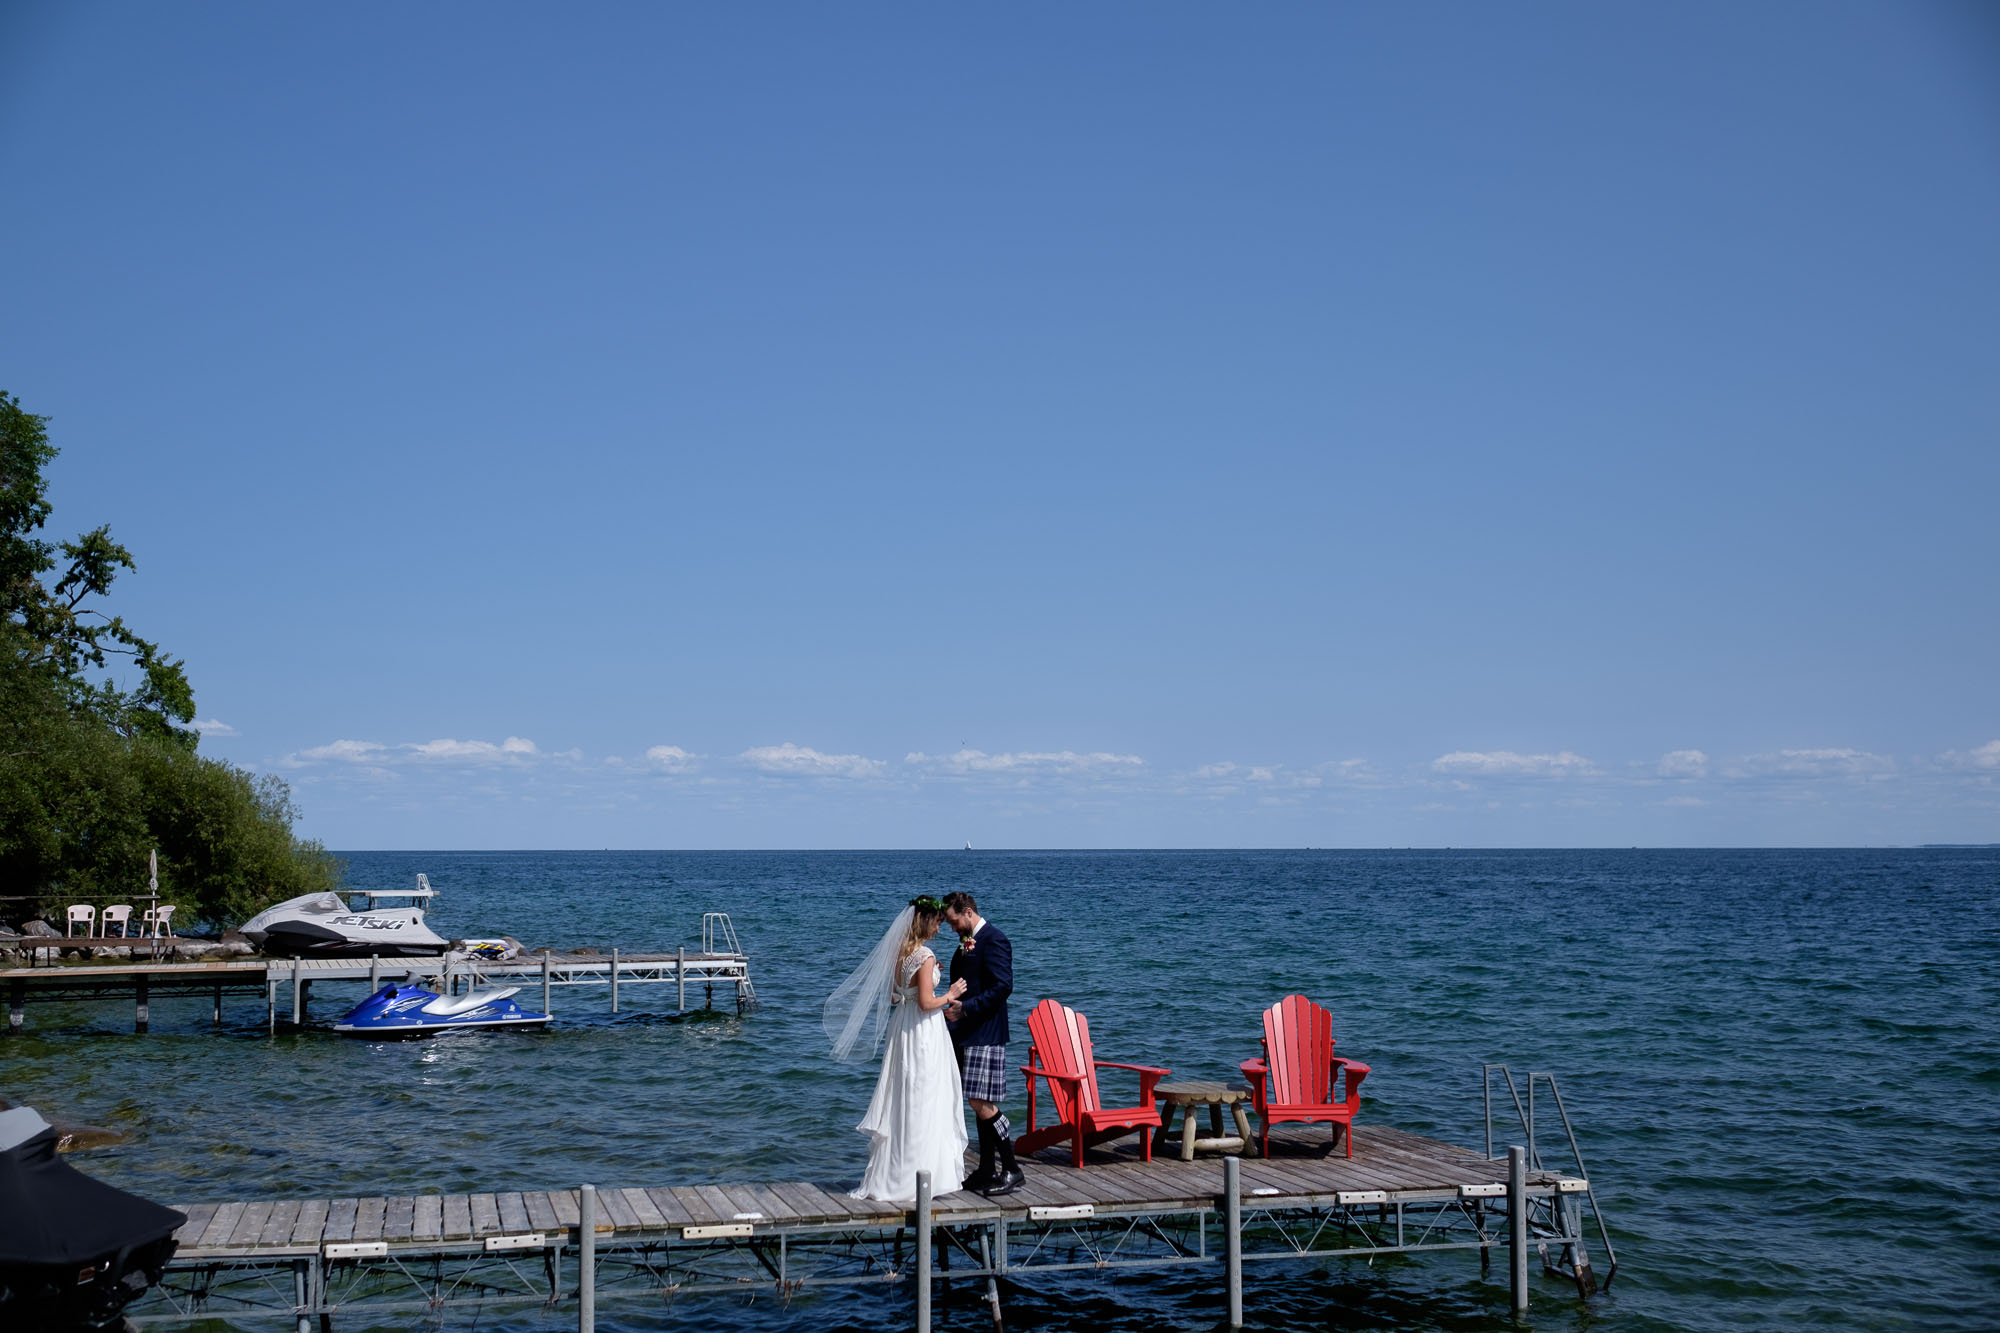 ONTARIO-BACKYARD-WEDDING-005.jpg